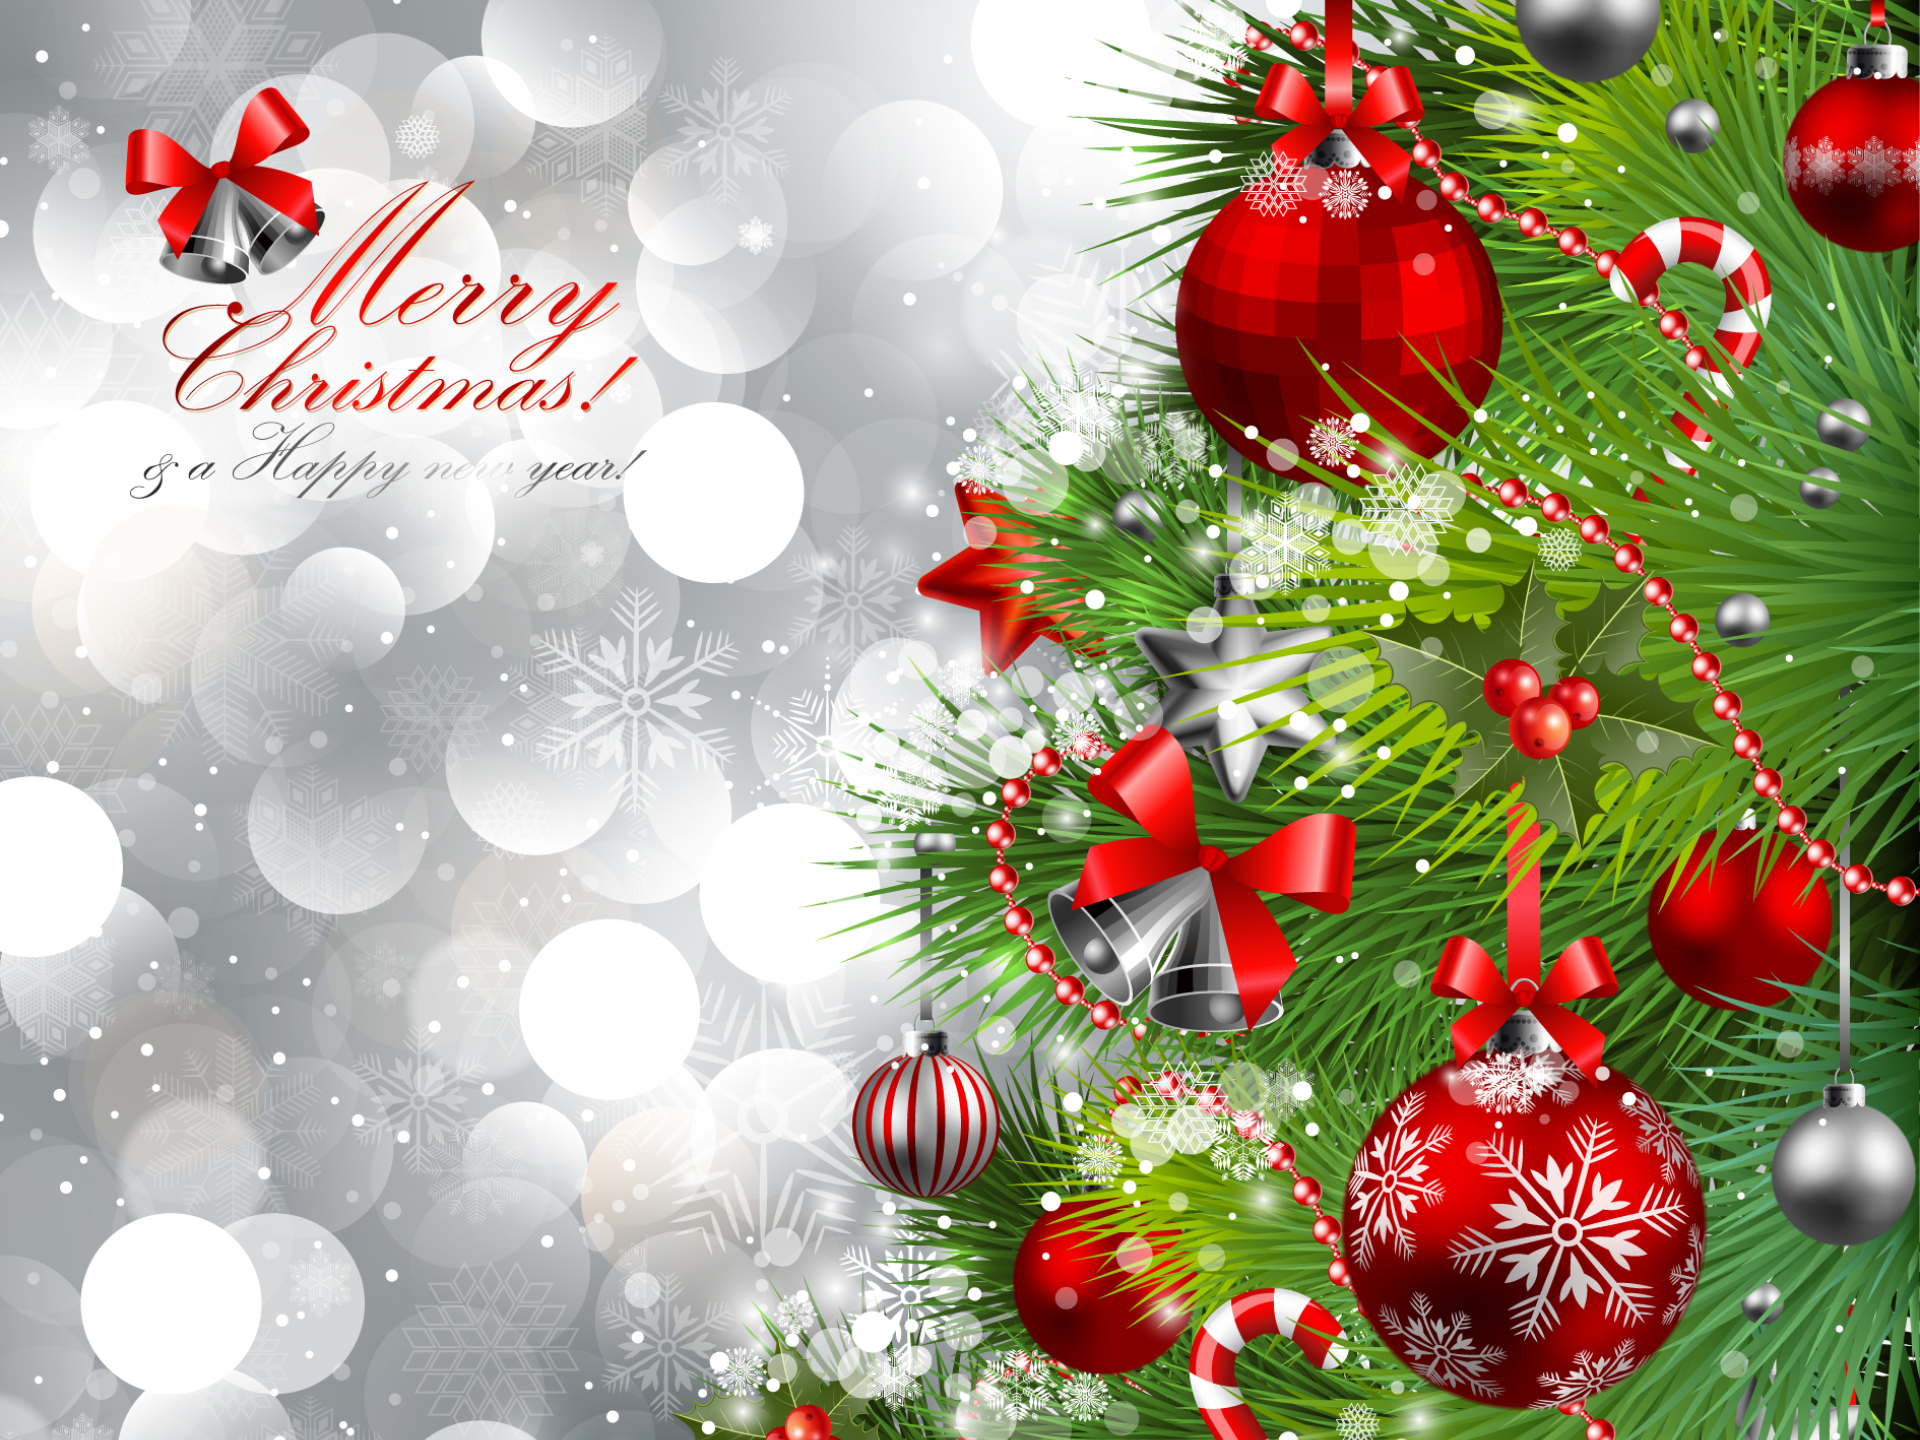 Merry Christmas   Christmas Wallpaper 32793659 1920x1440